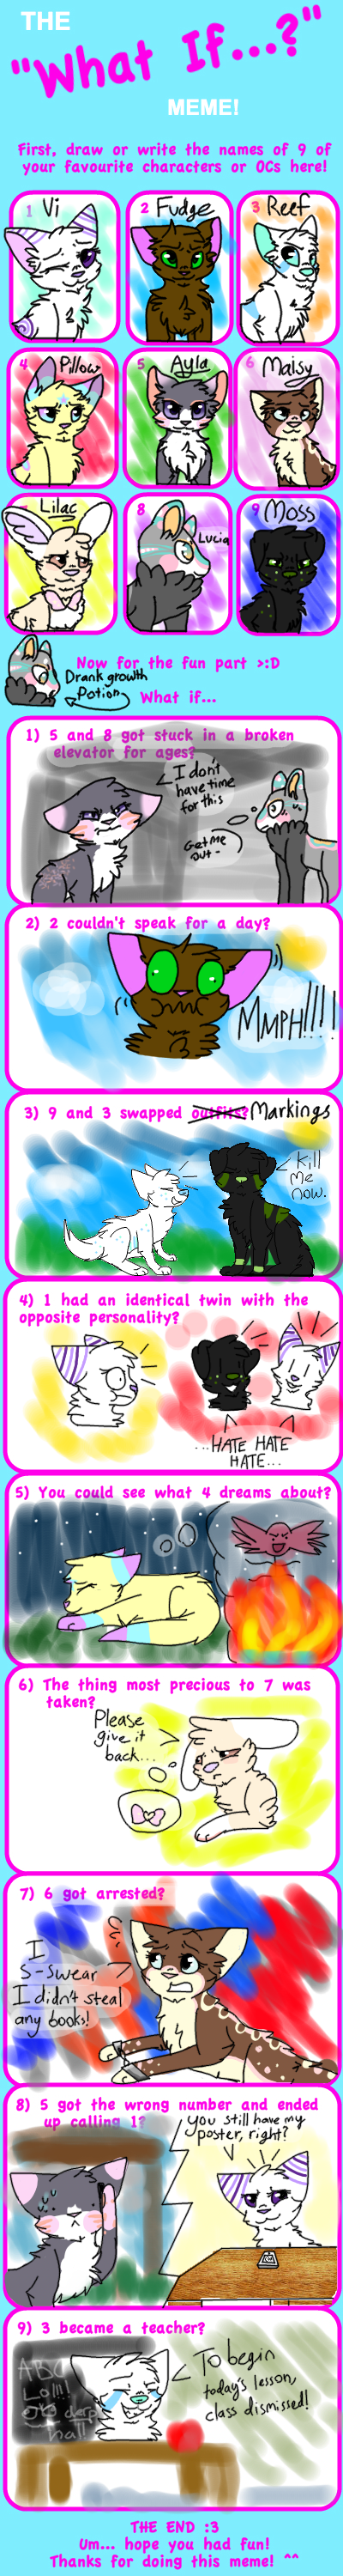 What If Meme by ThatCreativeCat